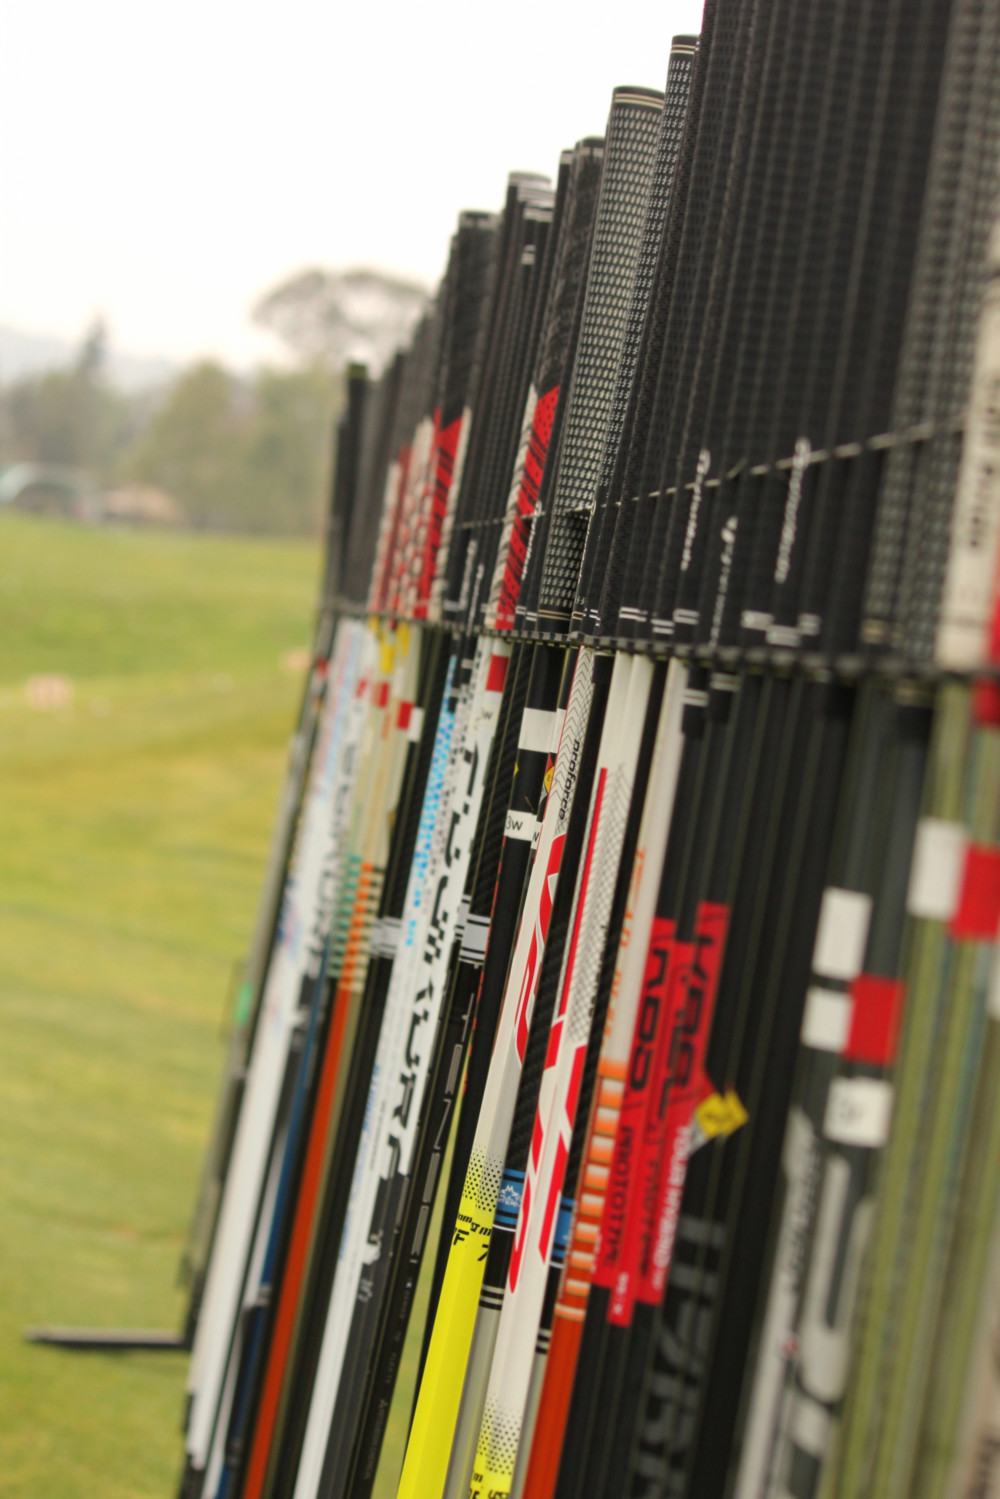 With hundreds of different shaft and head combinations, you're sure to discover the right fit for your game.